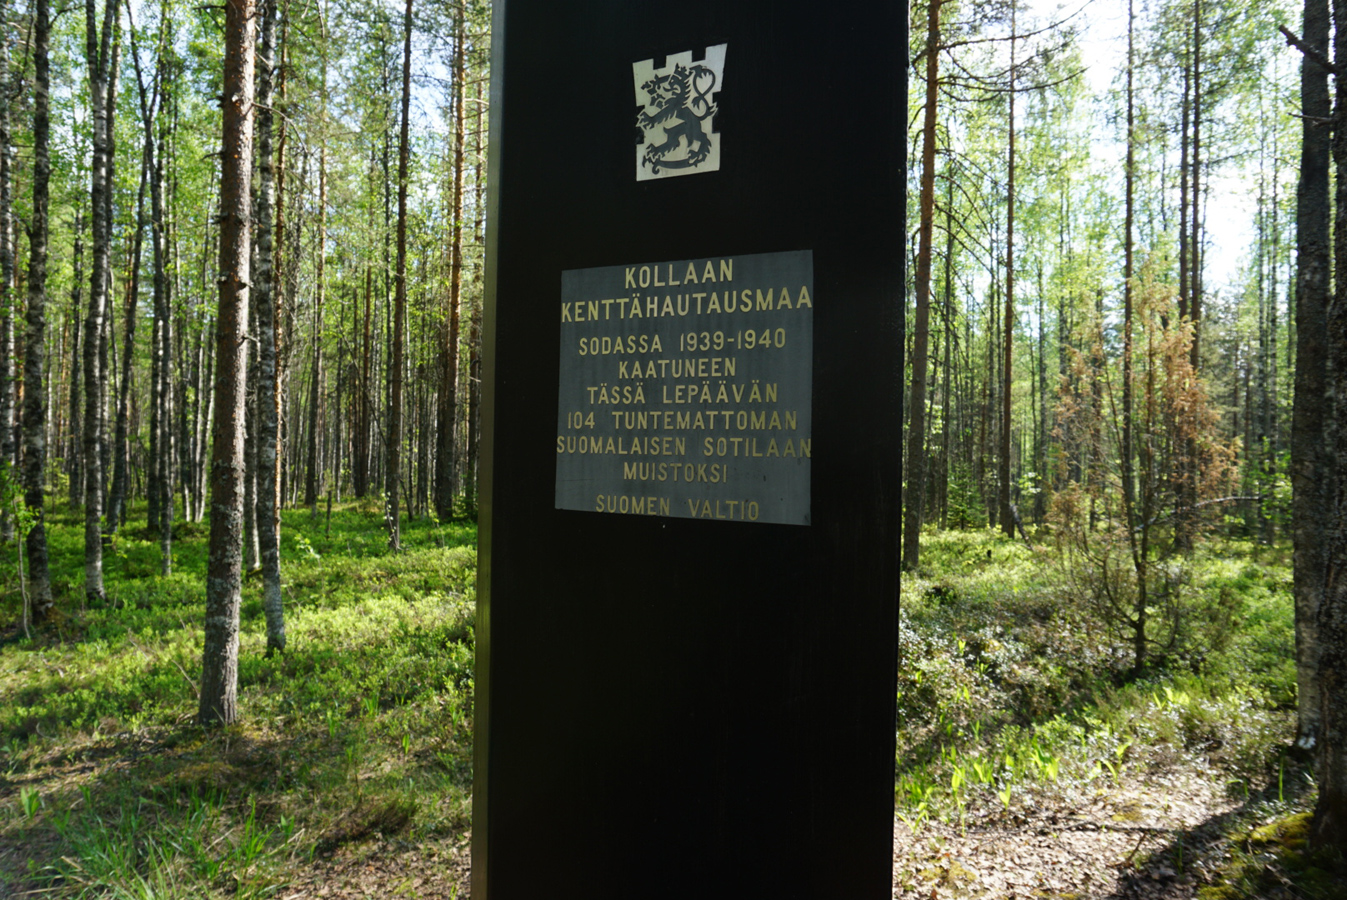 May 2018. Kollasjärvi. The memorial to Finnish warriors of 1939-1940